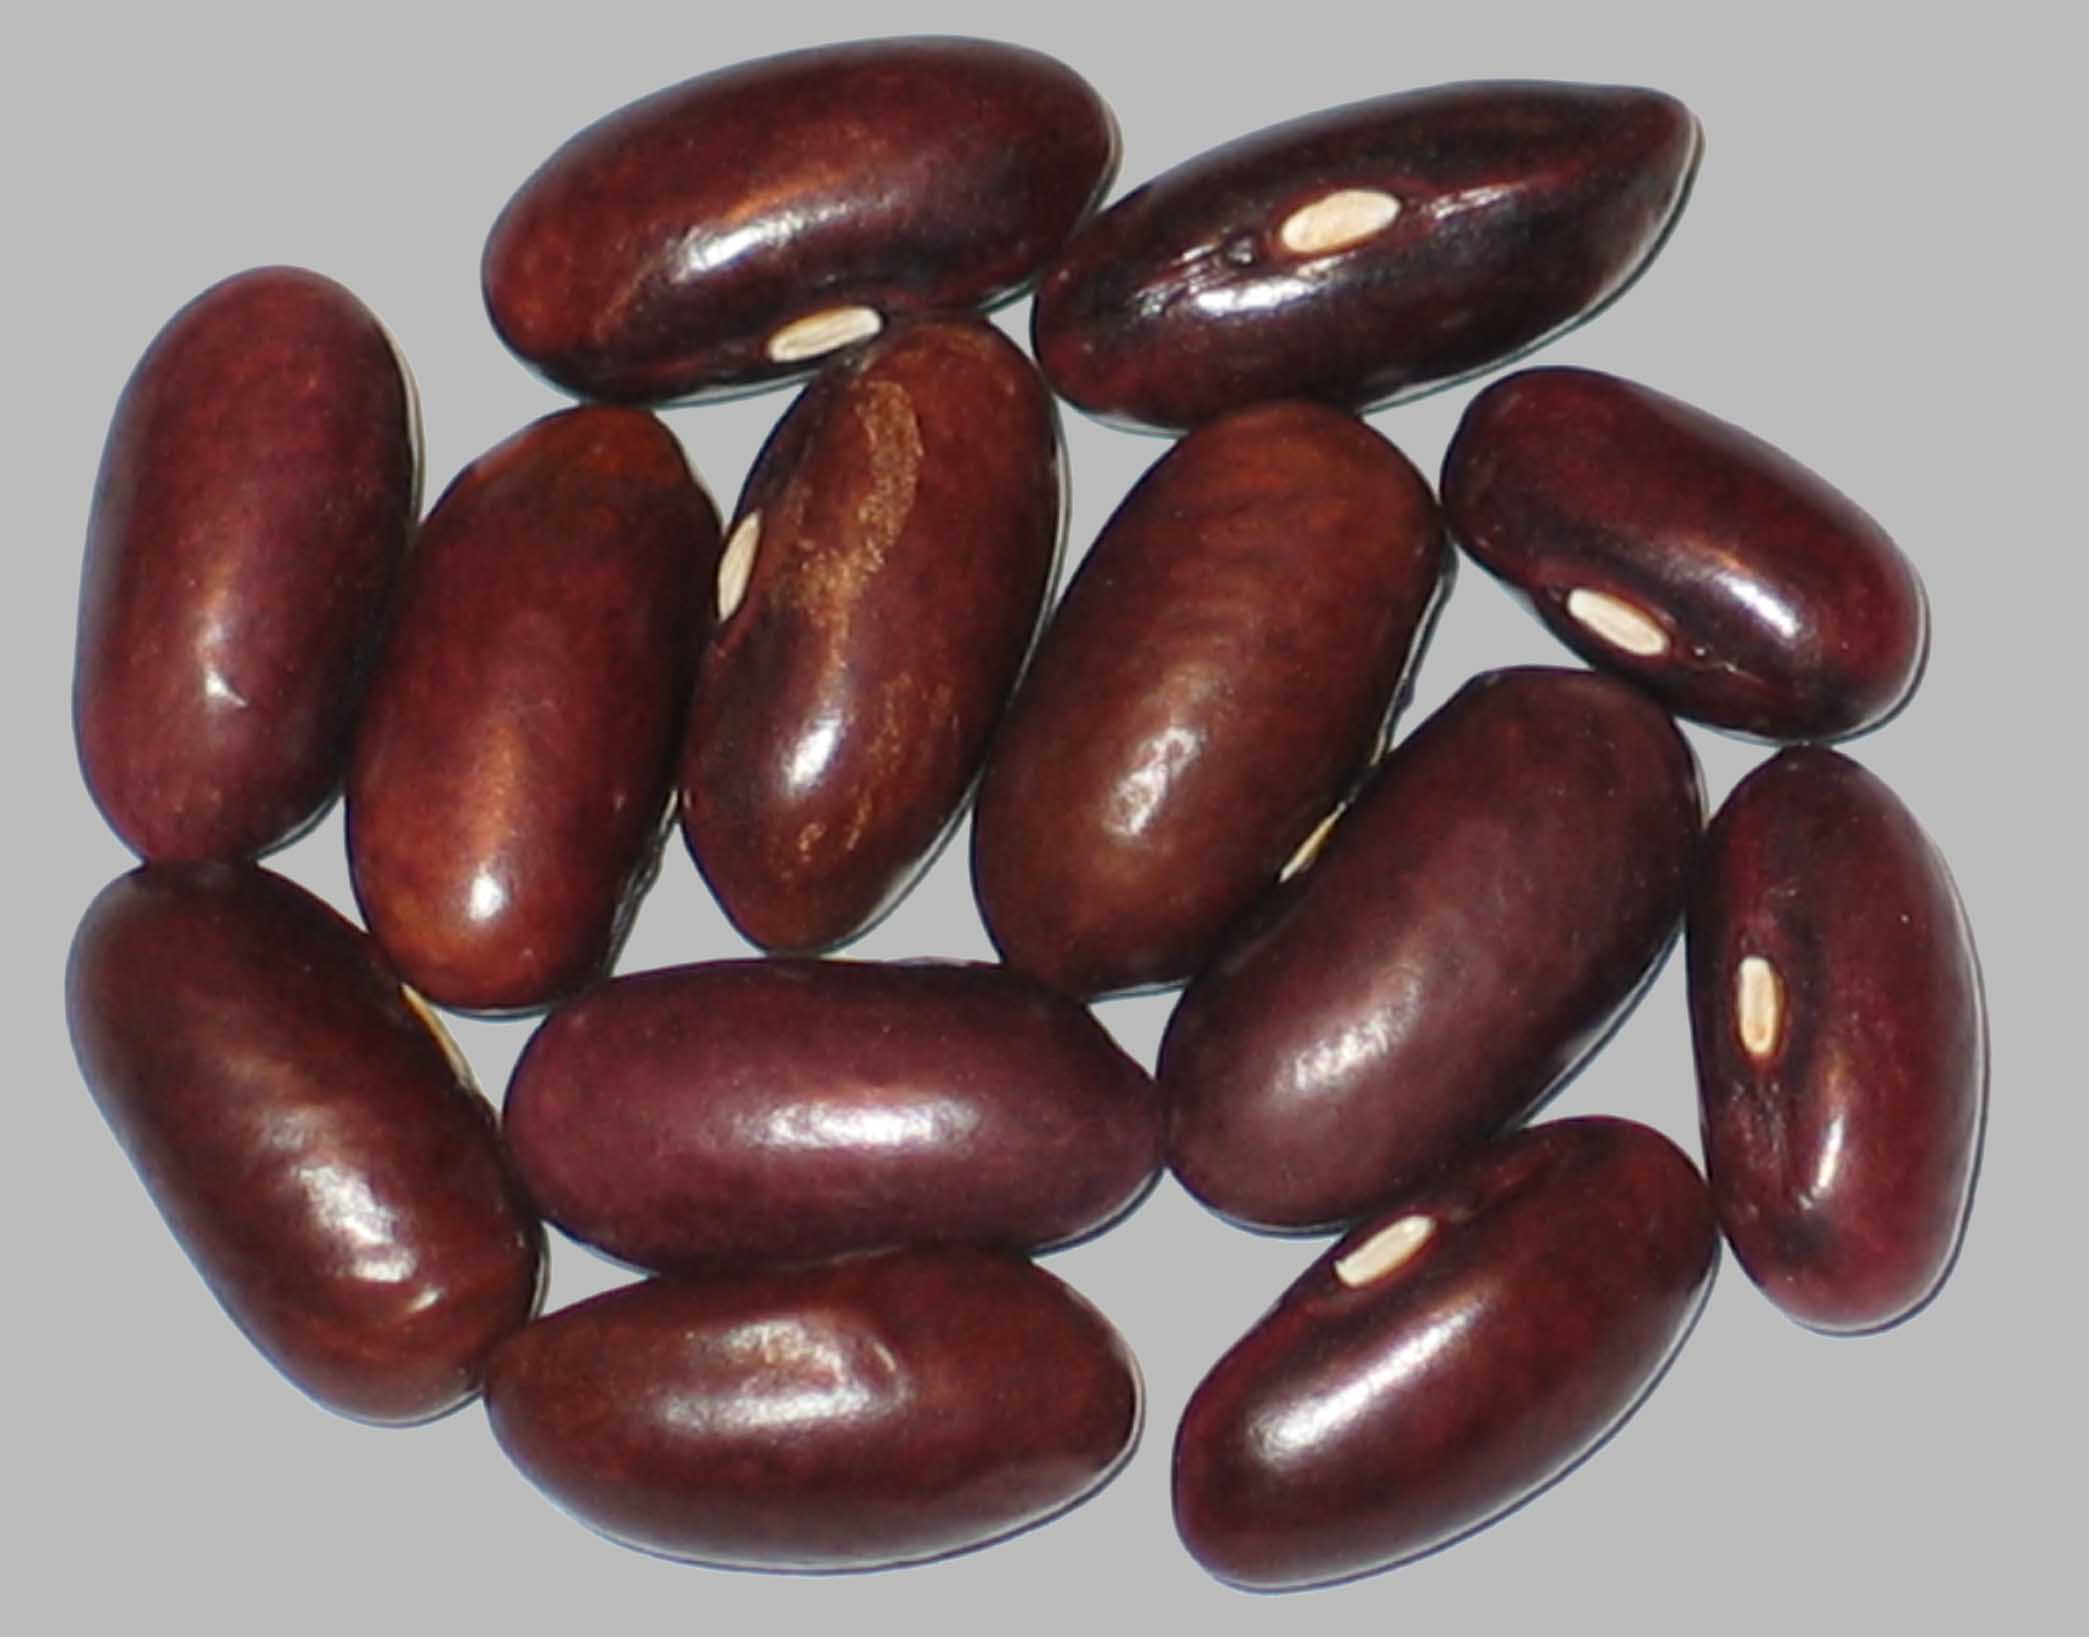 image of Wadex beans